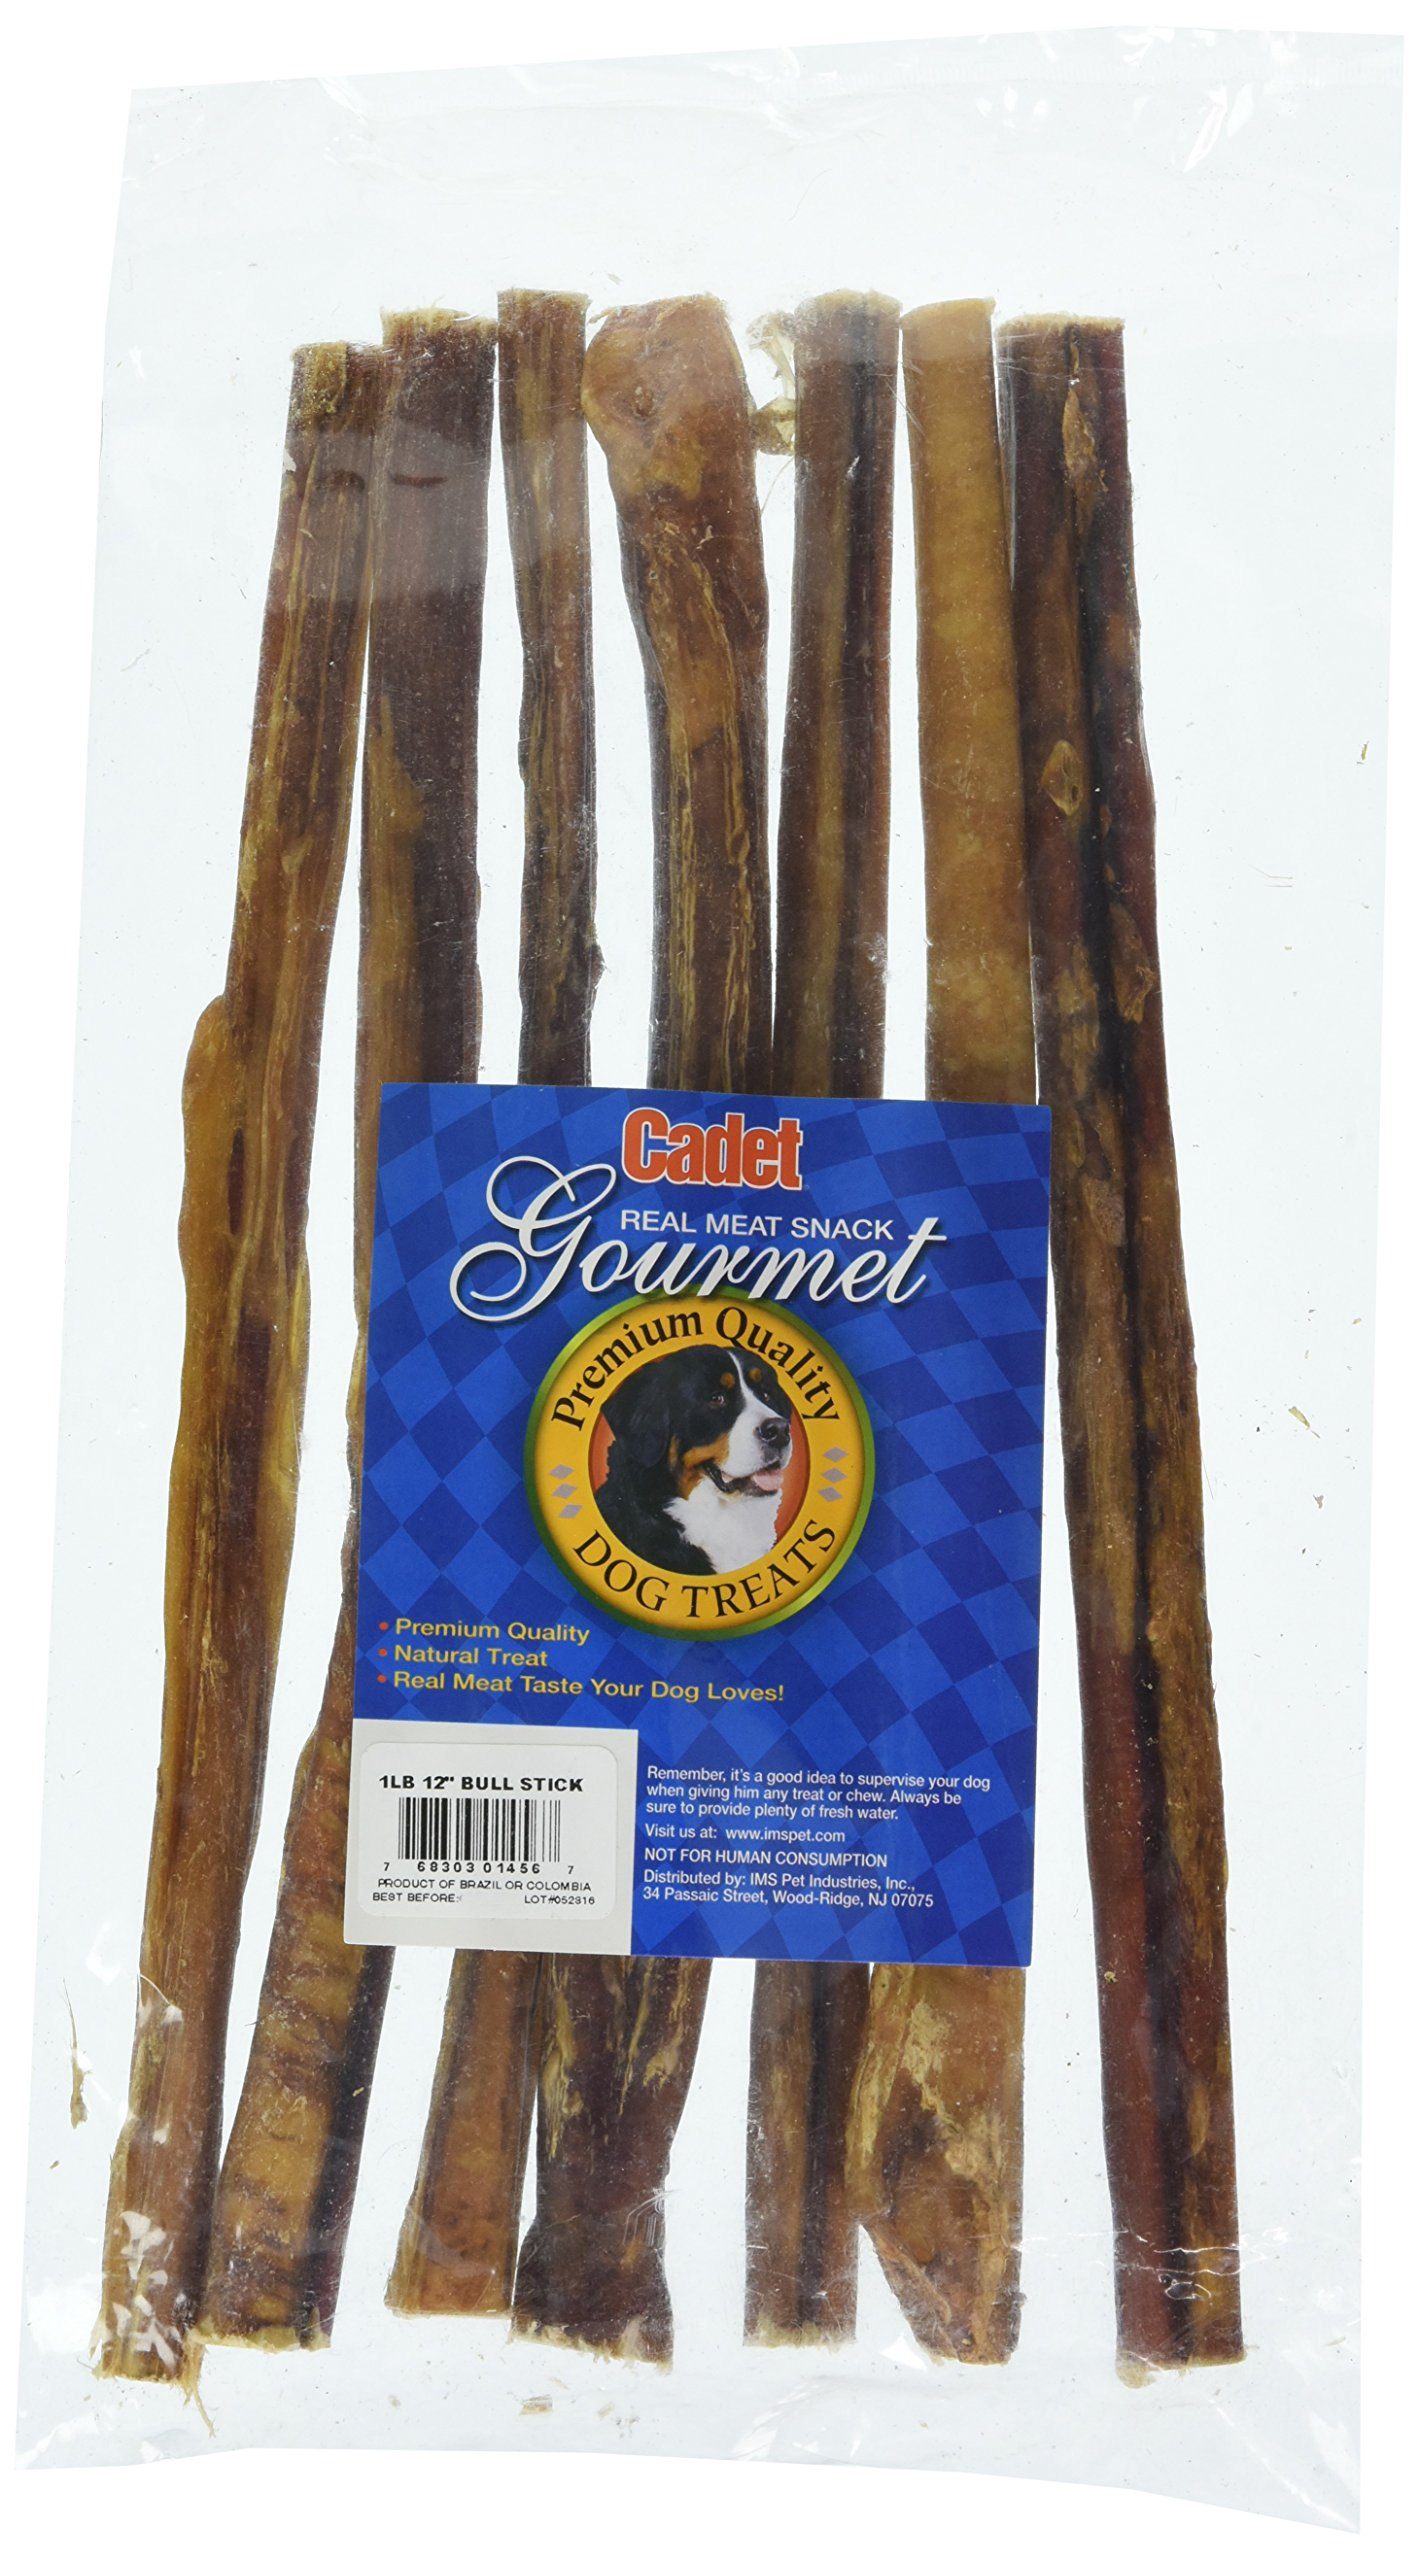 Cadet Gourmet 1 Pound All Natural Bully Sticks - 12 Inch Straight Bully Medium Thickness Bully Sticks Never Sourced From China - Approx 7-9 Sticks per Bag.